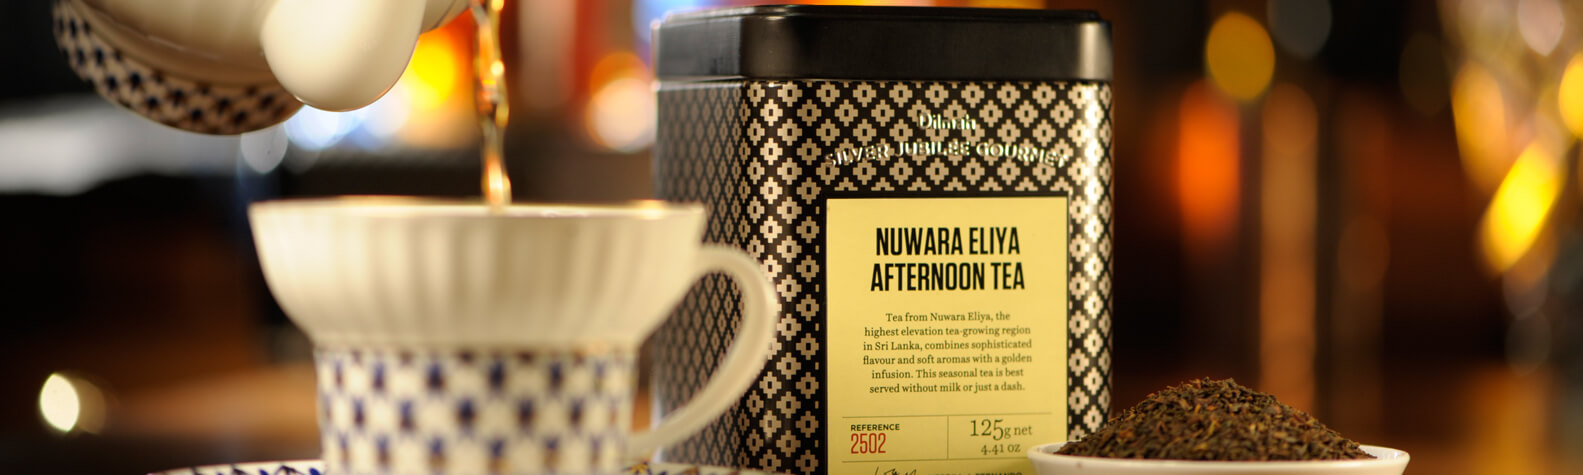 Container of Nuwara Eliya Afternoon Tea and a Cup with a Tea Cup